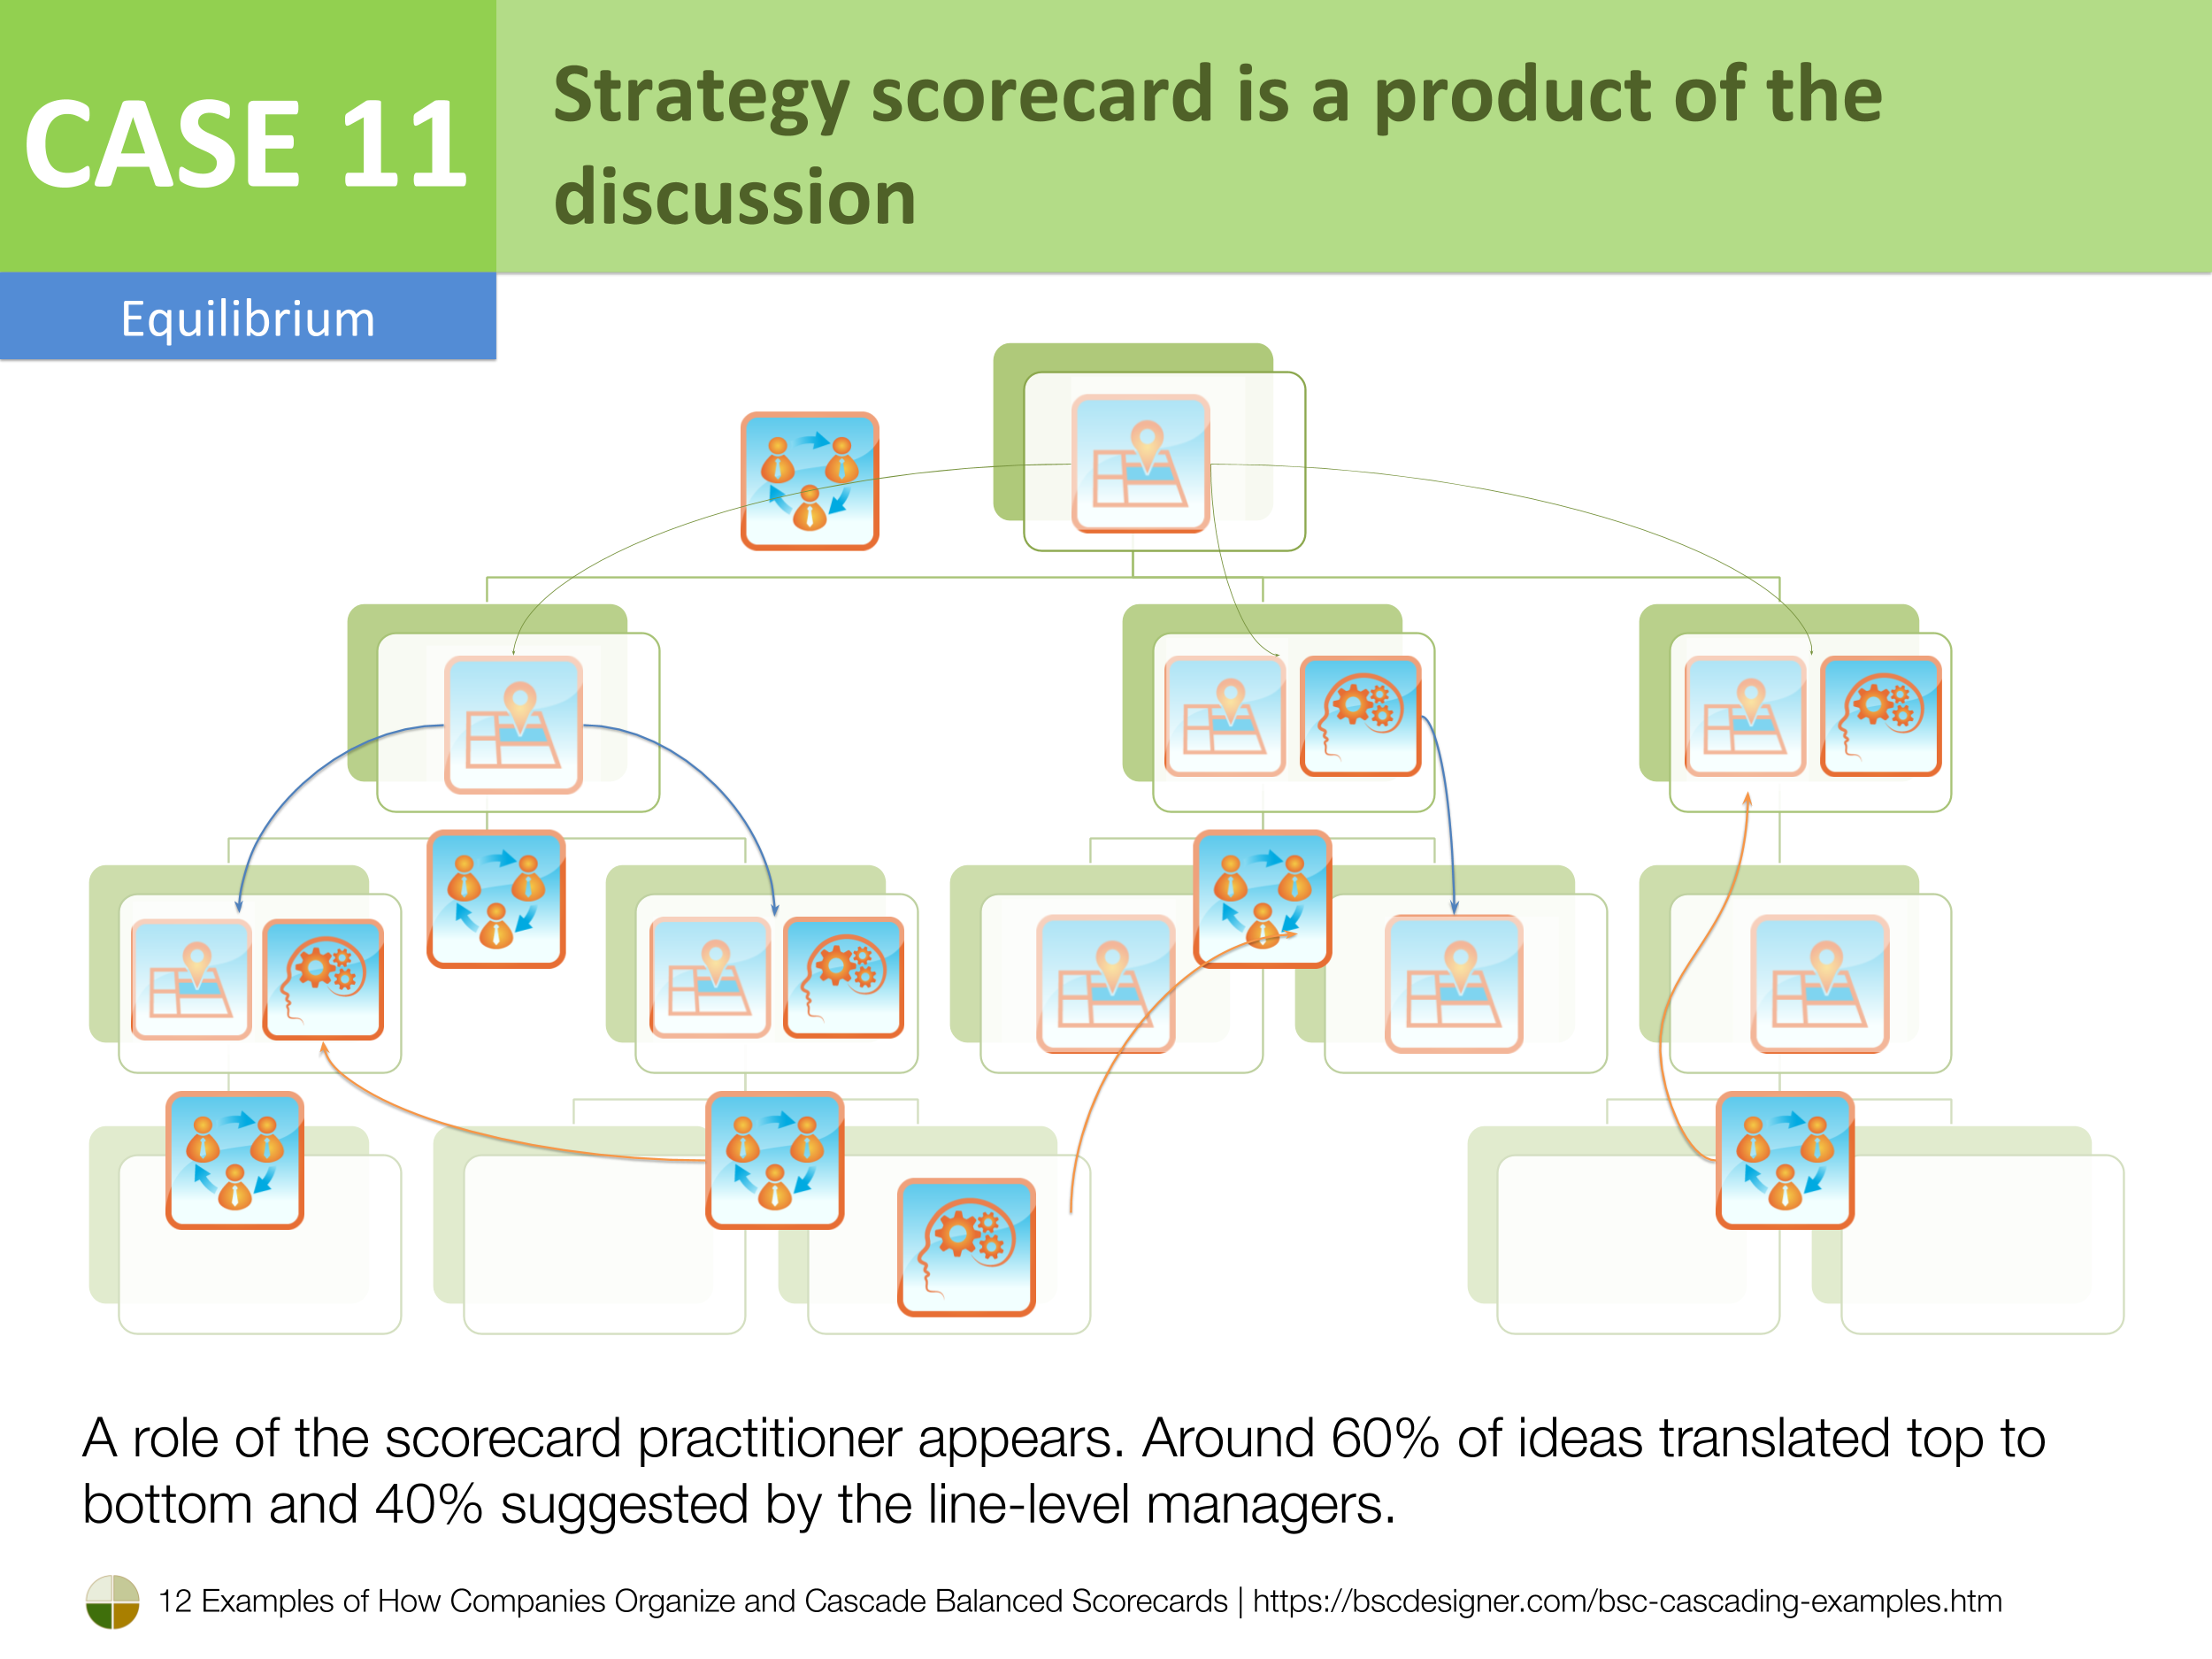 Case 11 - Strategy scorecard is a product of the discussion